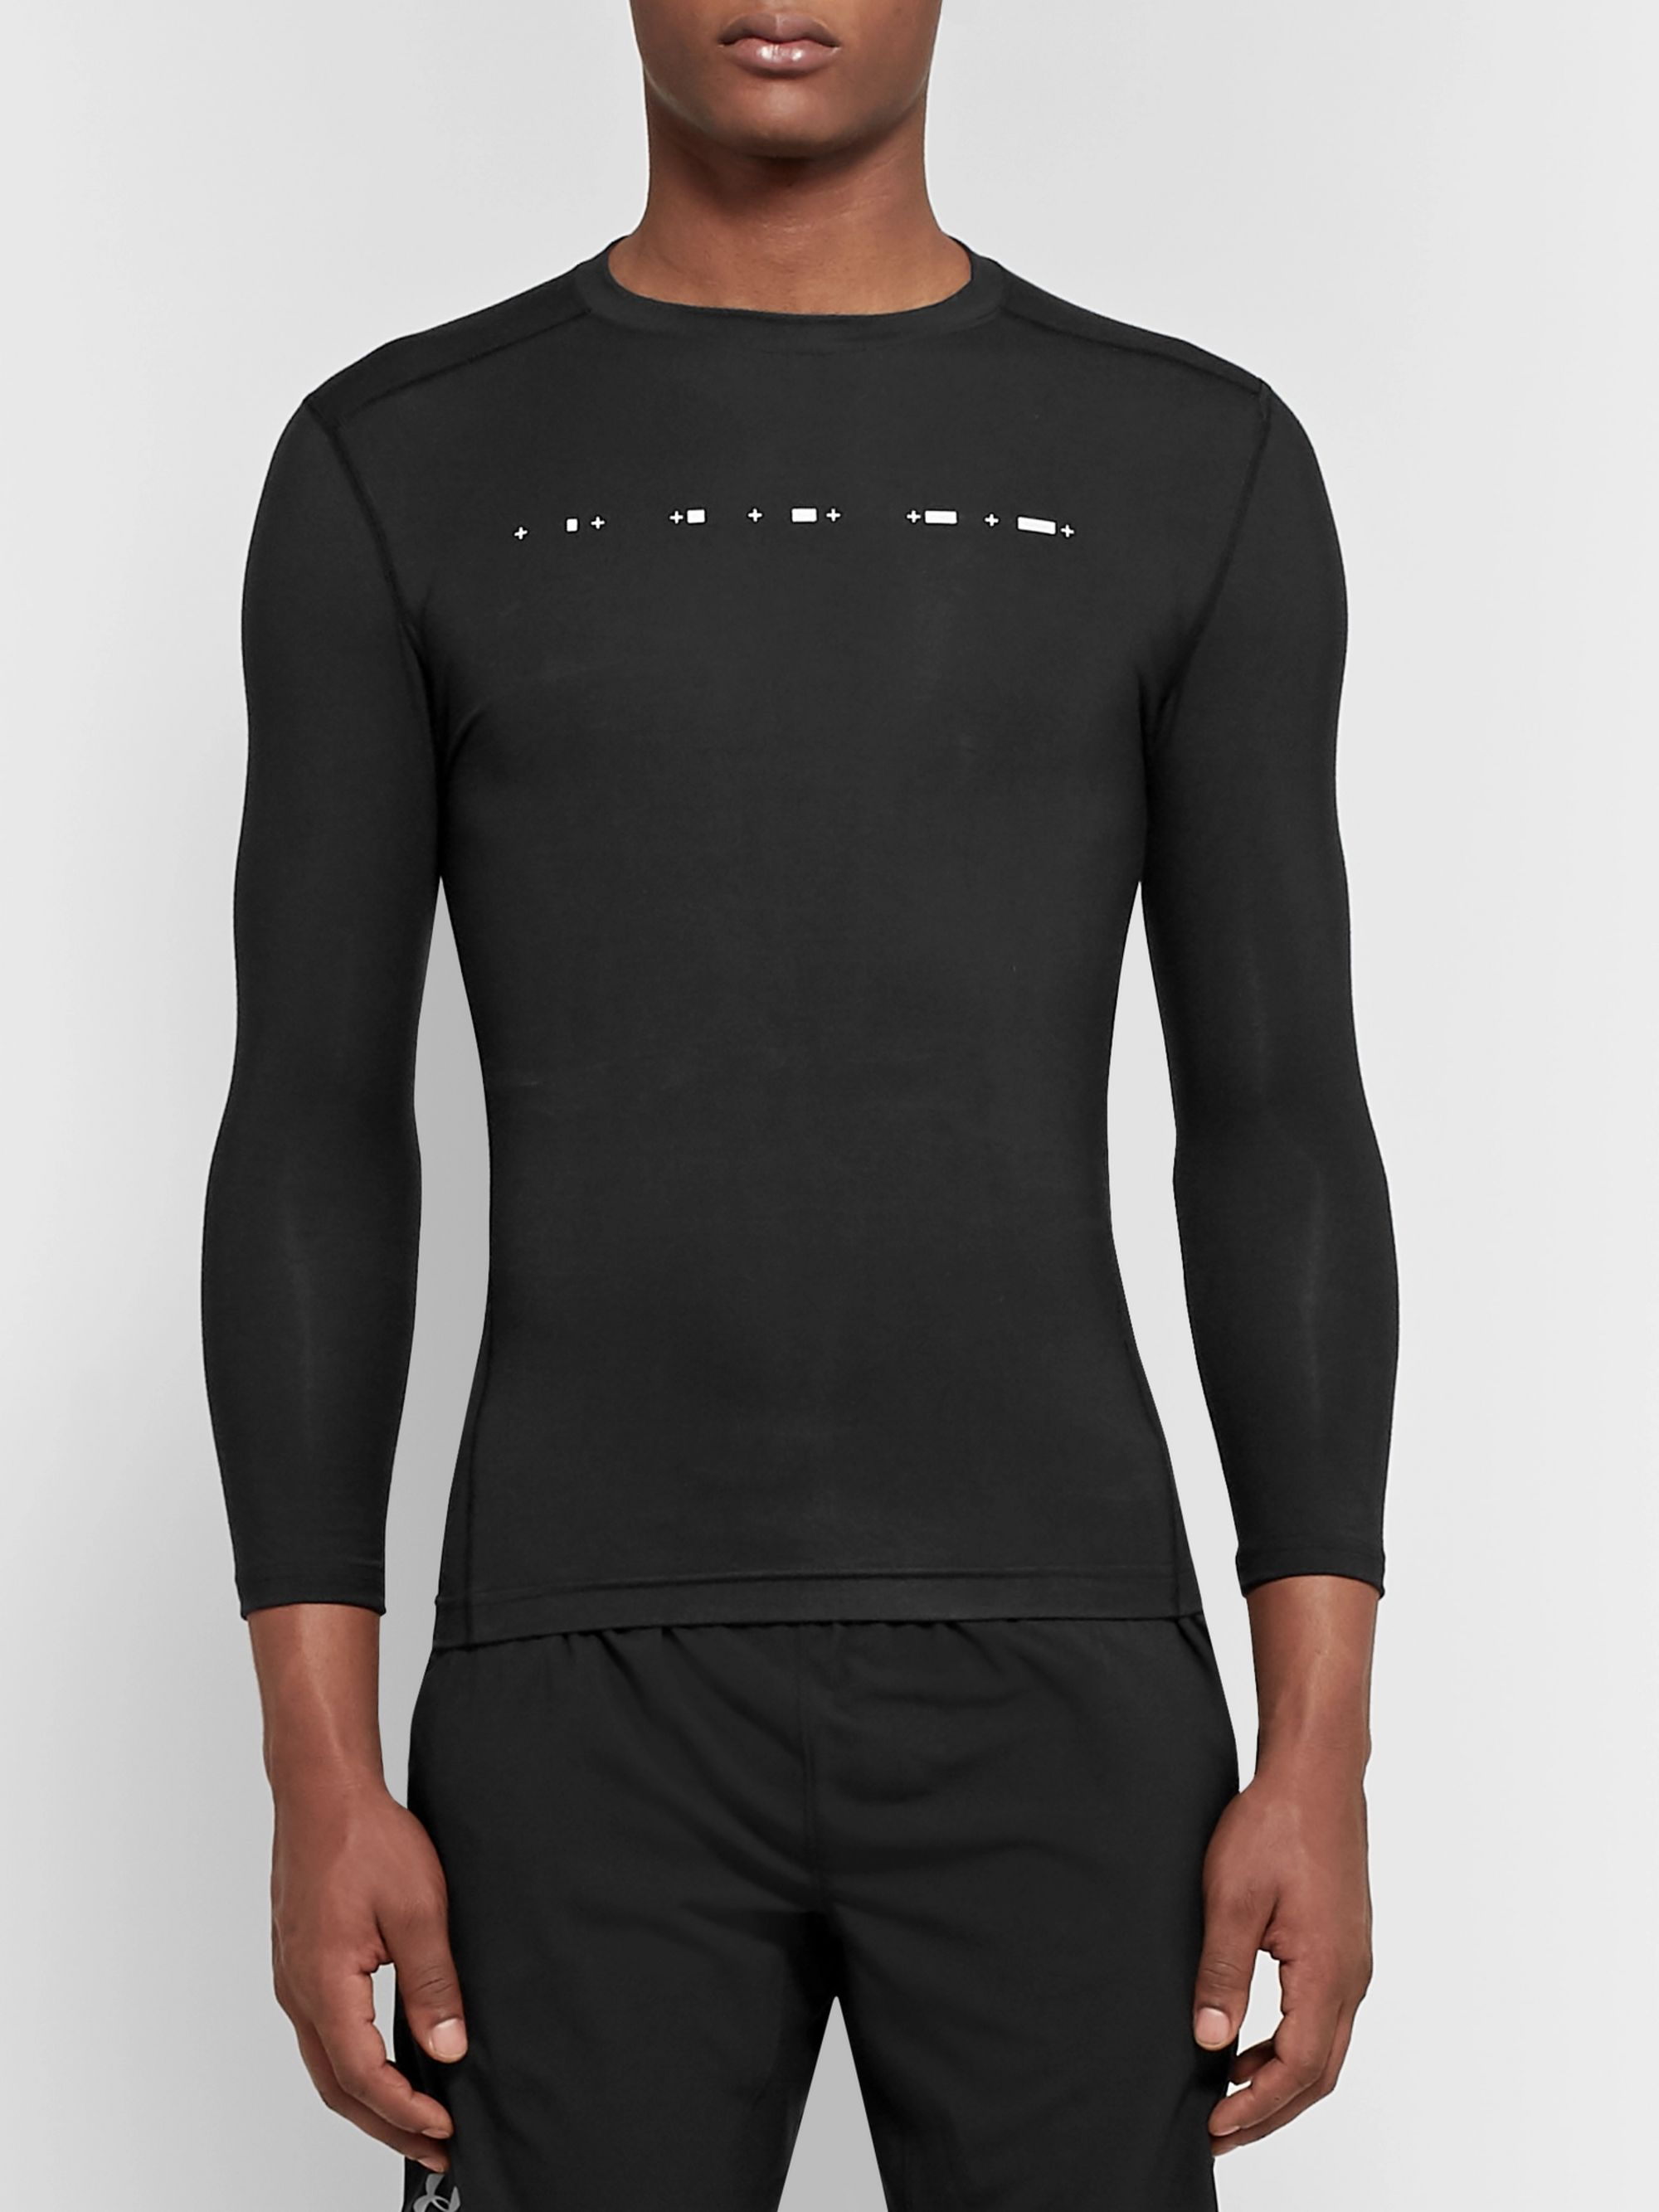 Under Armour Athlete Recovery Compression Printed Stretch-Modal Top